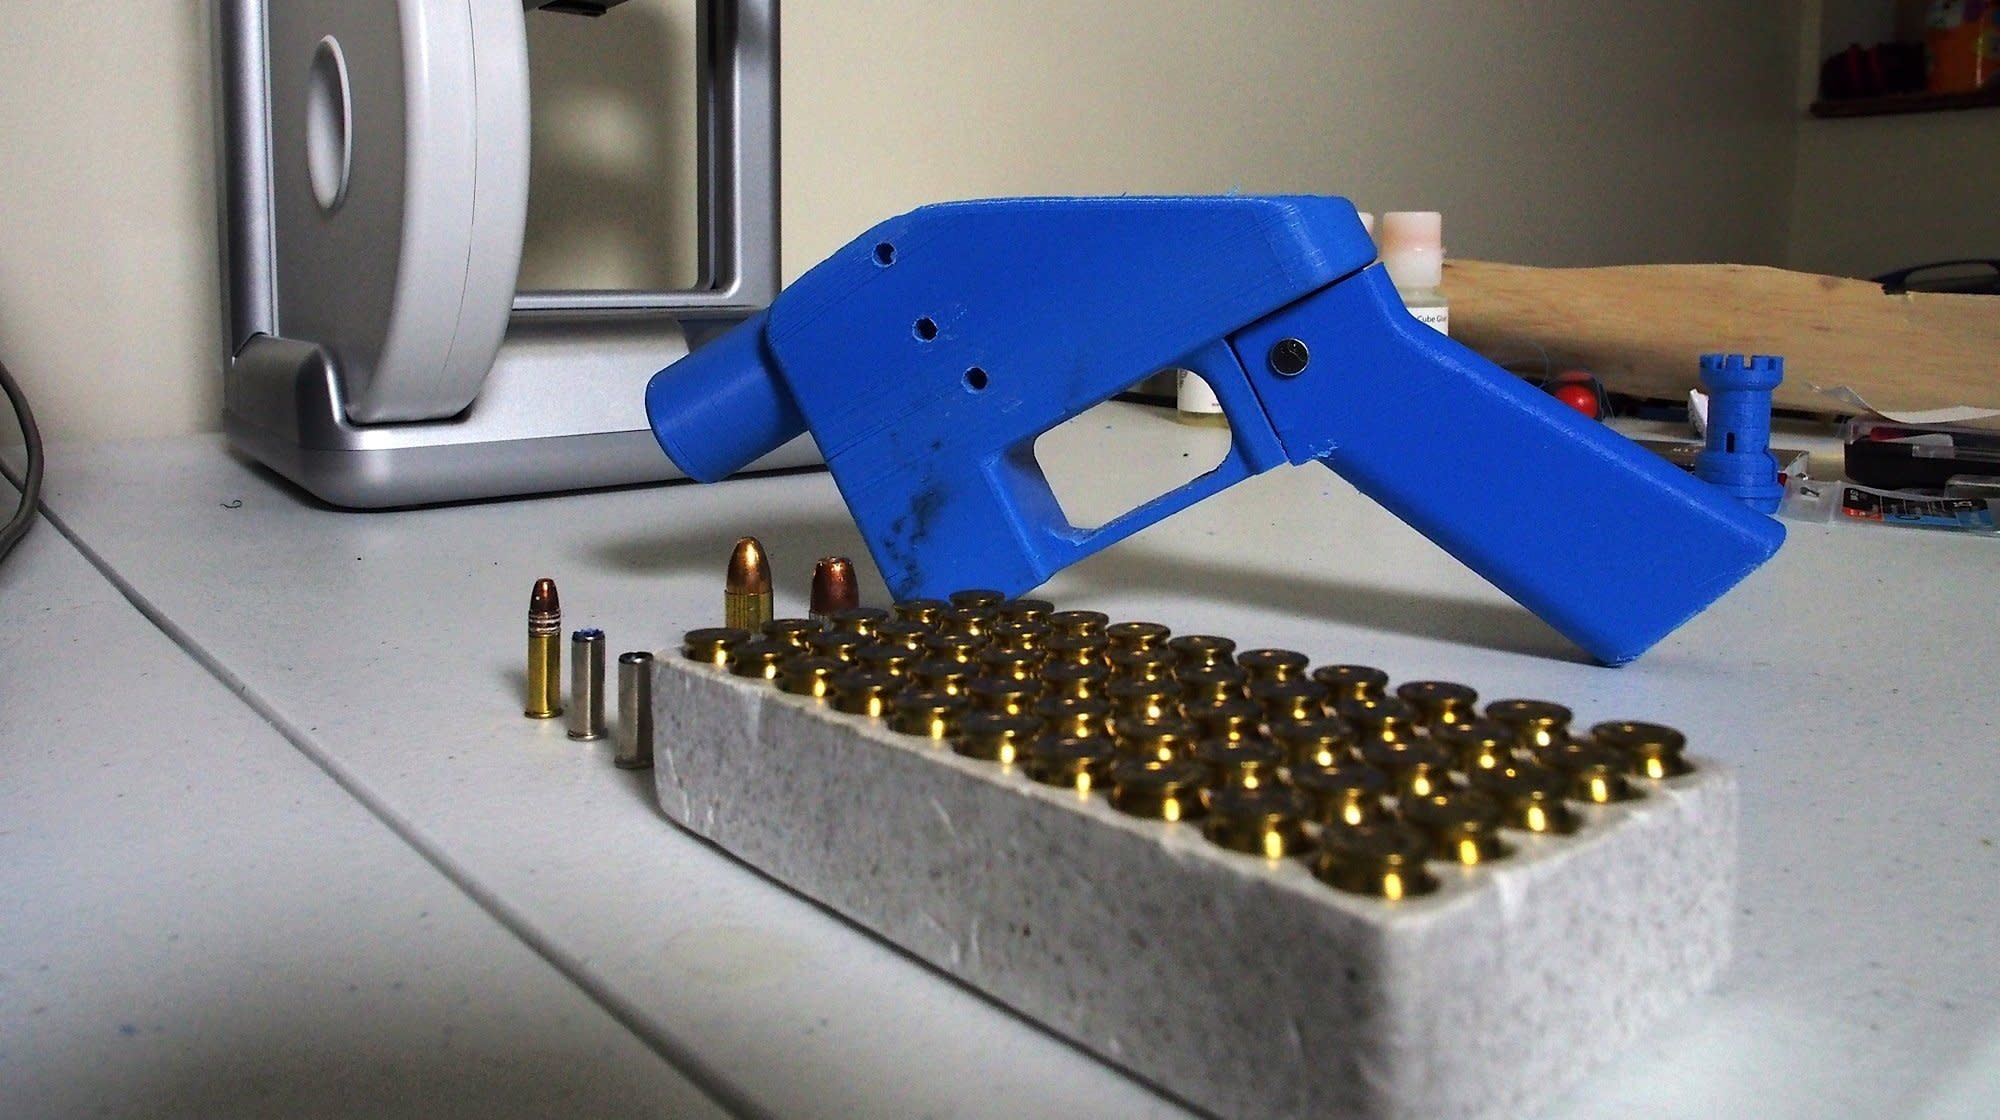 States Sue Trump Administration To Block Release Of 3D-Printed Gun Blueprints